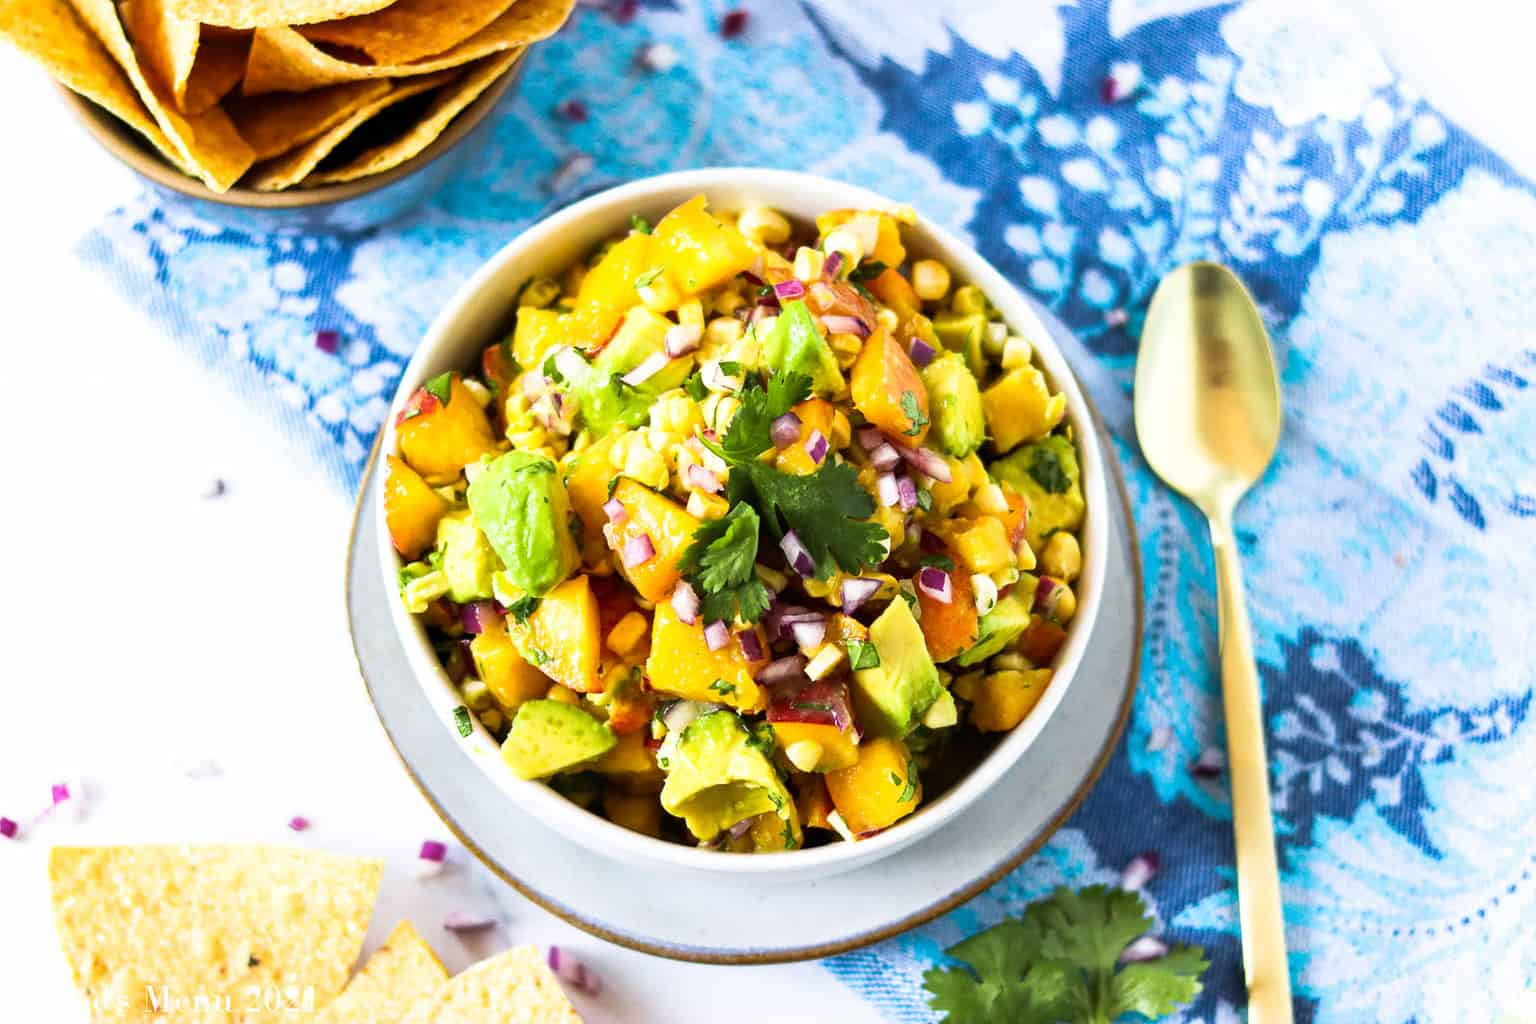 A horizontal shot of a bowl of avocado peach salsa surrounded by a spoon and tortilla chips